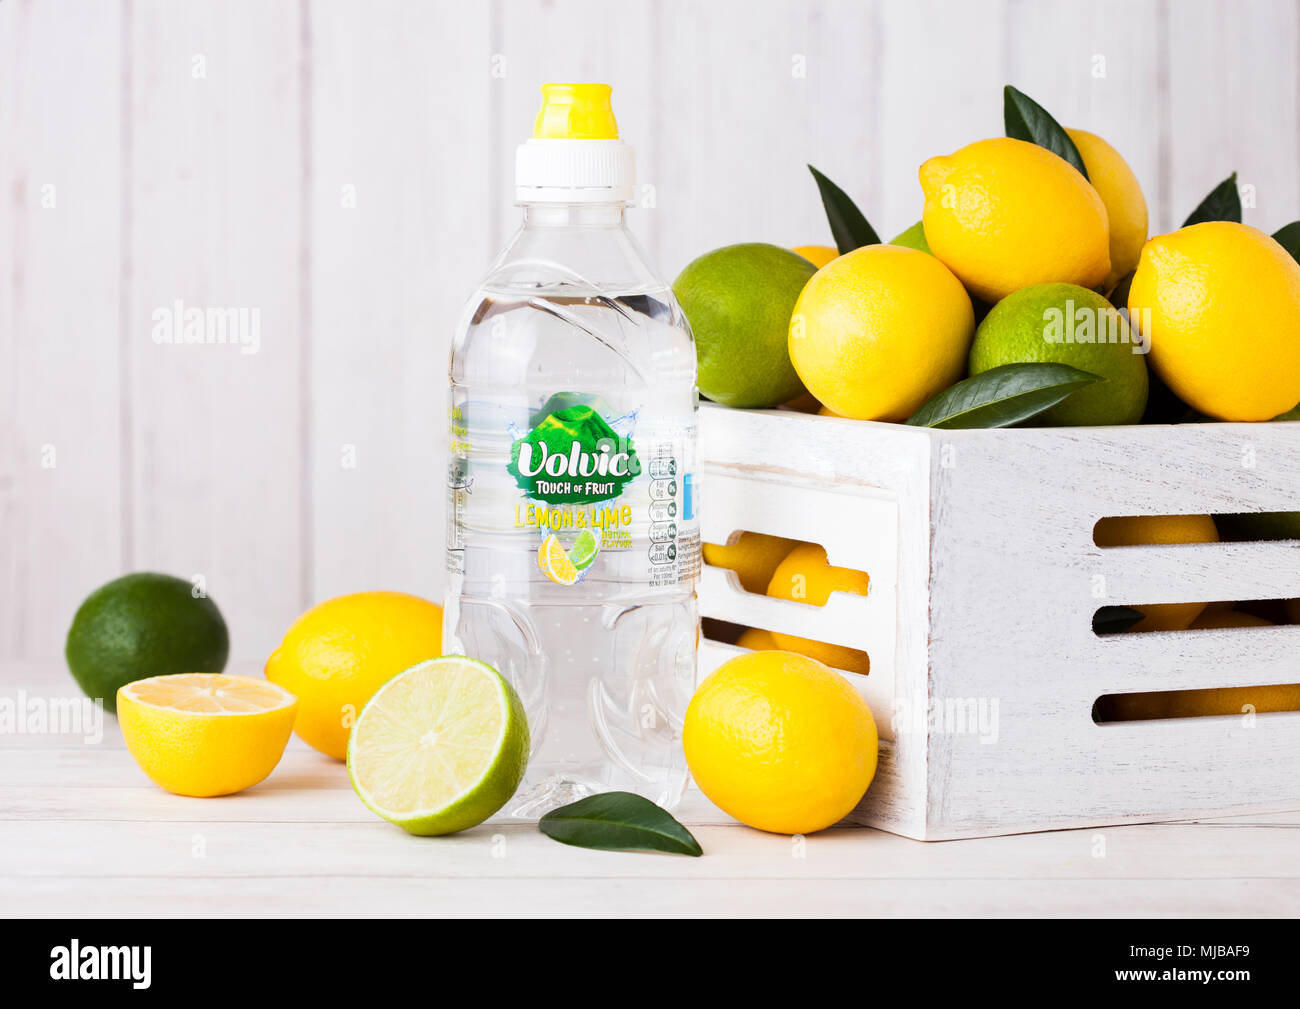 LONDON, UK - APRIL 12, 2017: Plastic bottle of Volvic still water on wooden background with lemons and limes in white wooden box. - Stock Image